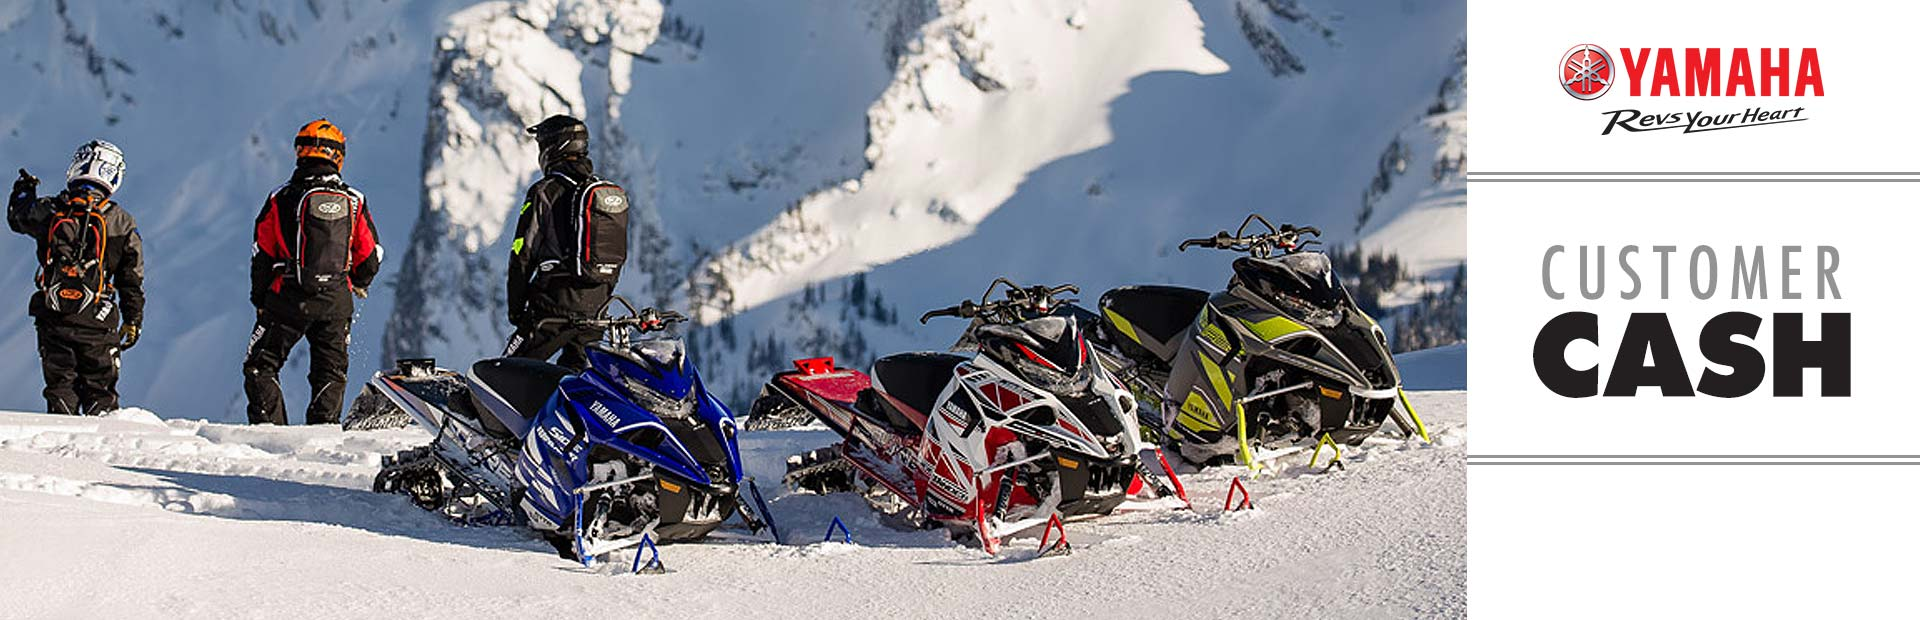 Yamaha: Customer Cash (Snowmobile, SxS)